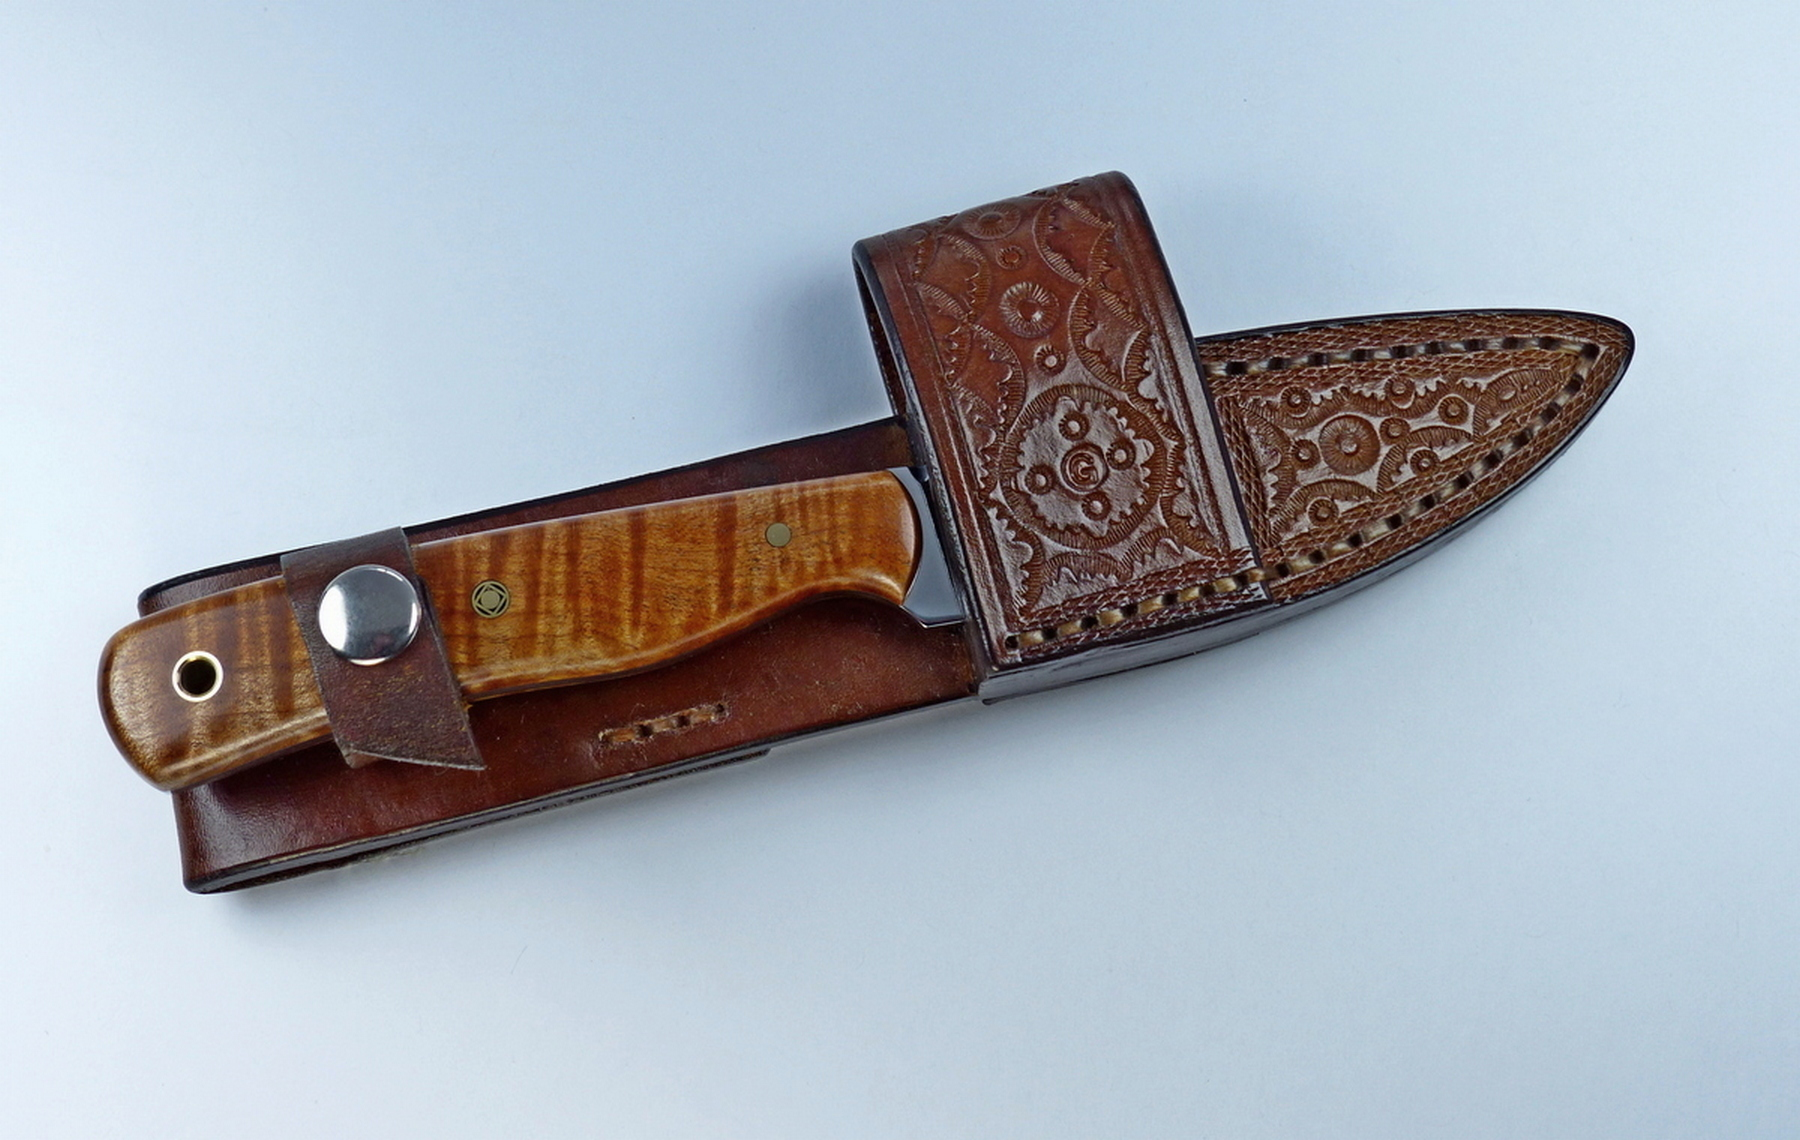 Brown colored EDC knife inserted inside leather cross draw sheath